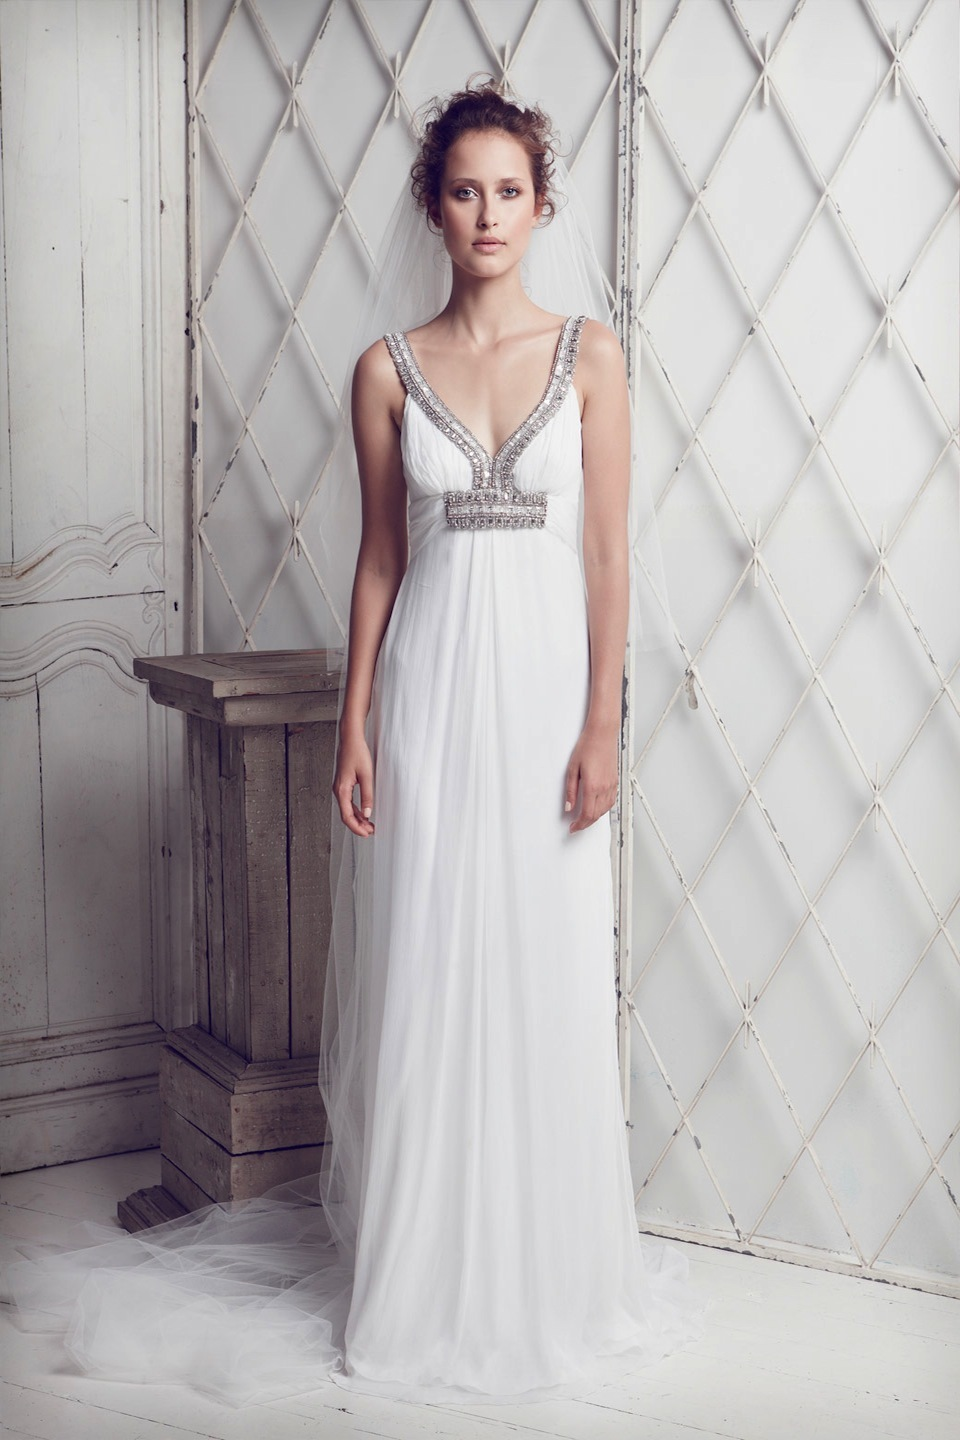 Collette-dinnigan-wedding-dress-2012-bridal-gowns-9.full